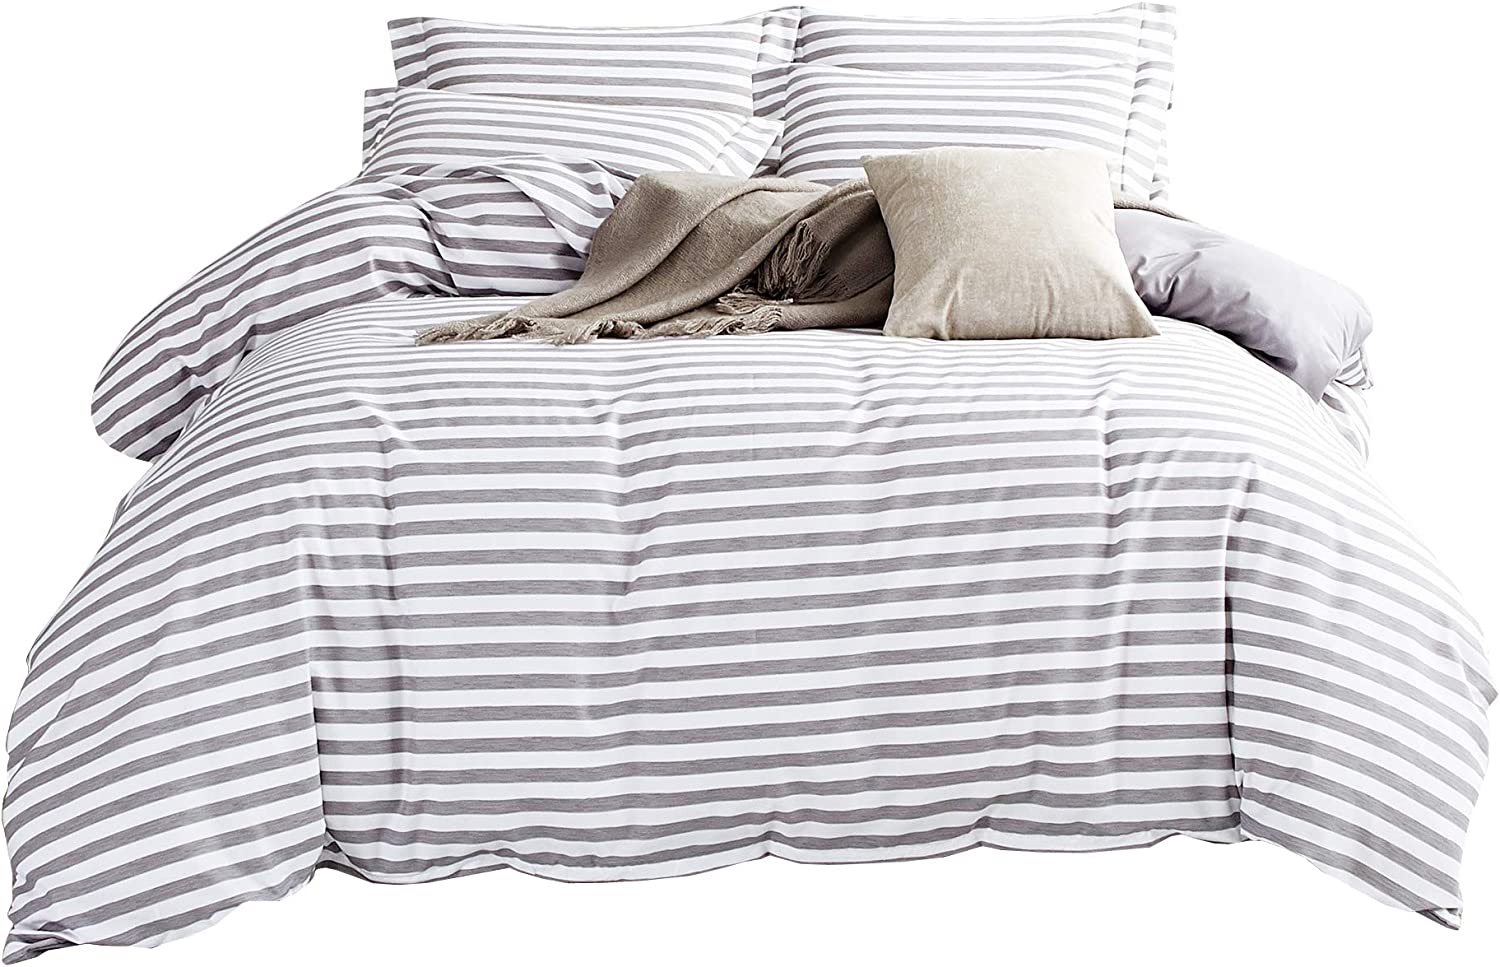 3 Pieces Translated Bedding Set Reversible Cover Duvet Very popular Sets White Cov